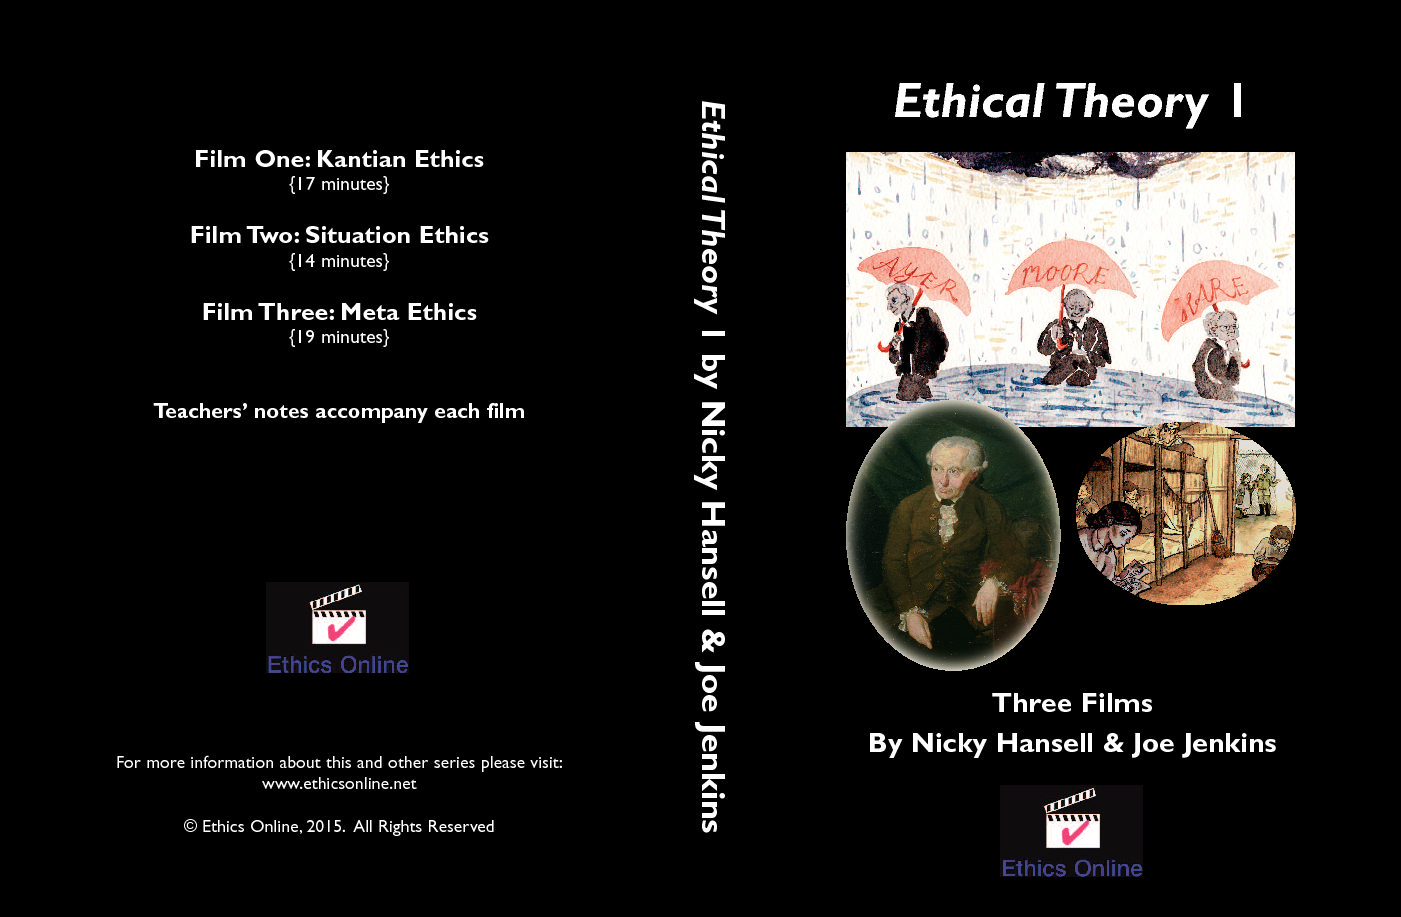 Ethical Theories 1 DVD cover